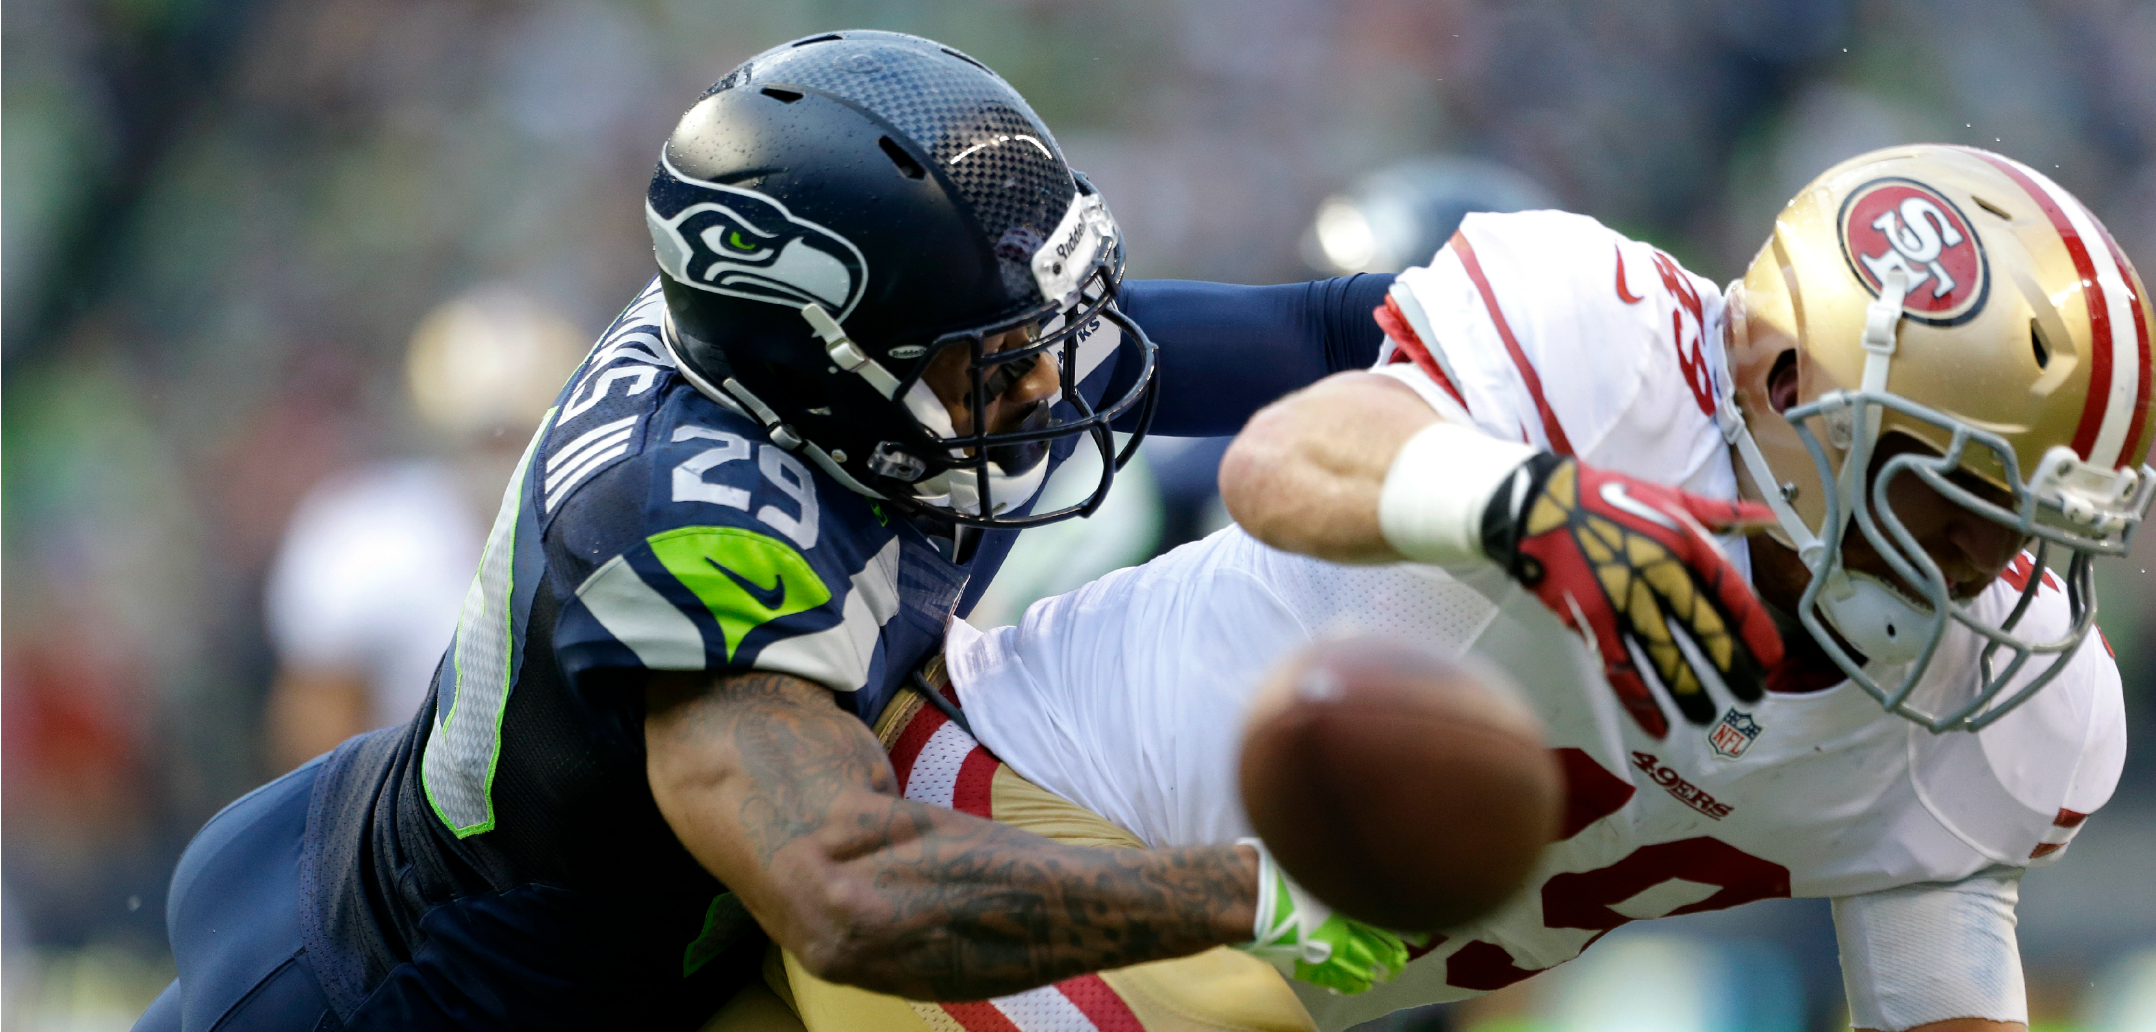 Courtesy of USA Today: Along with J.J. Watt, Thomas stands above the rest of NFL defenders.